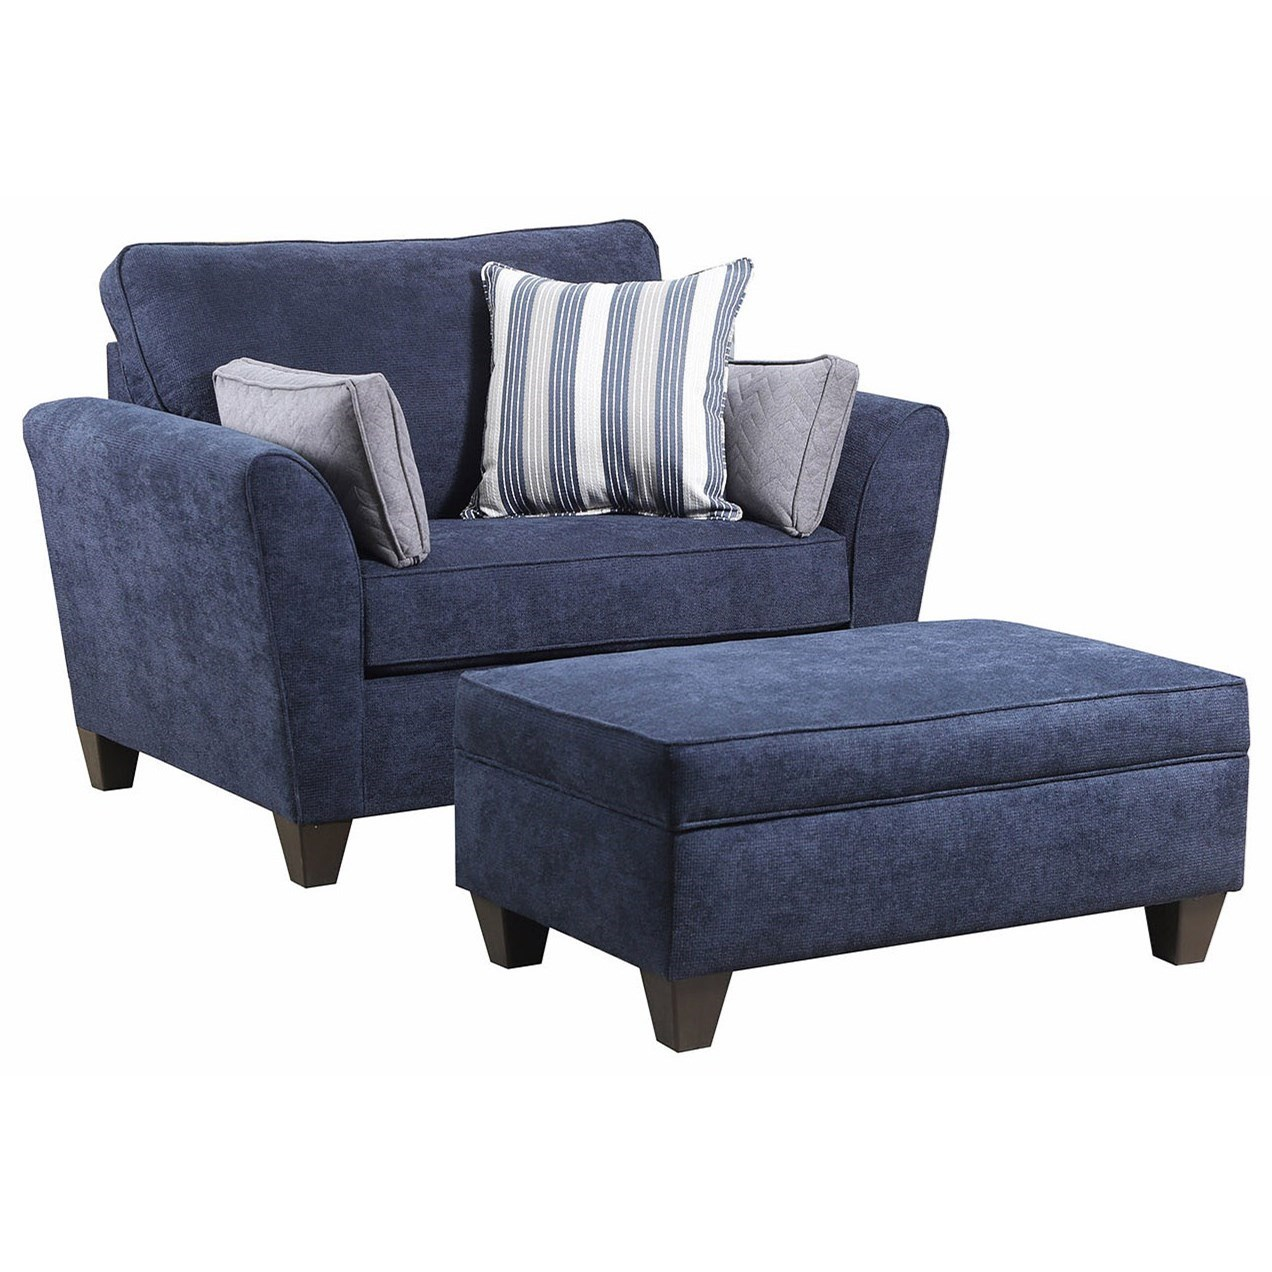 7081 Chair and a Half and Ottoman Set  by Lane at Esprit Decor Home Furnishings